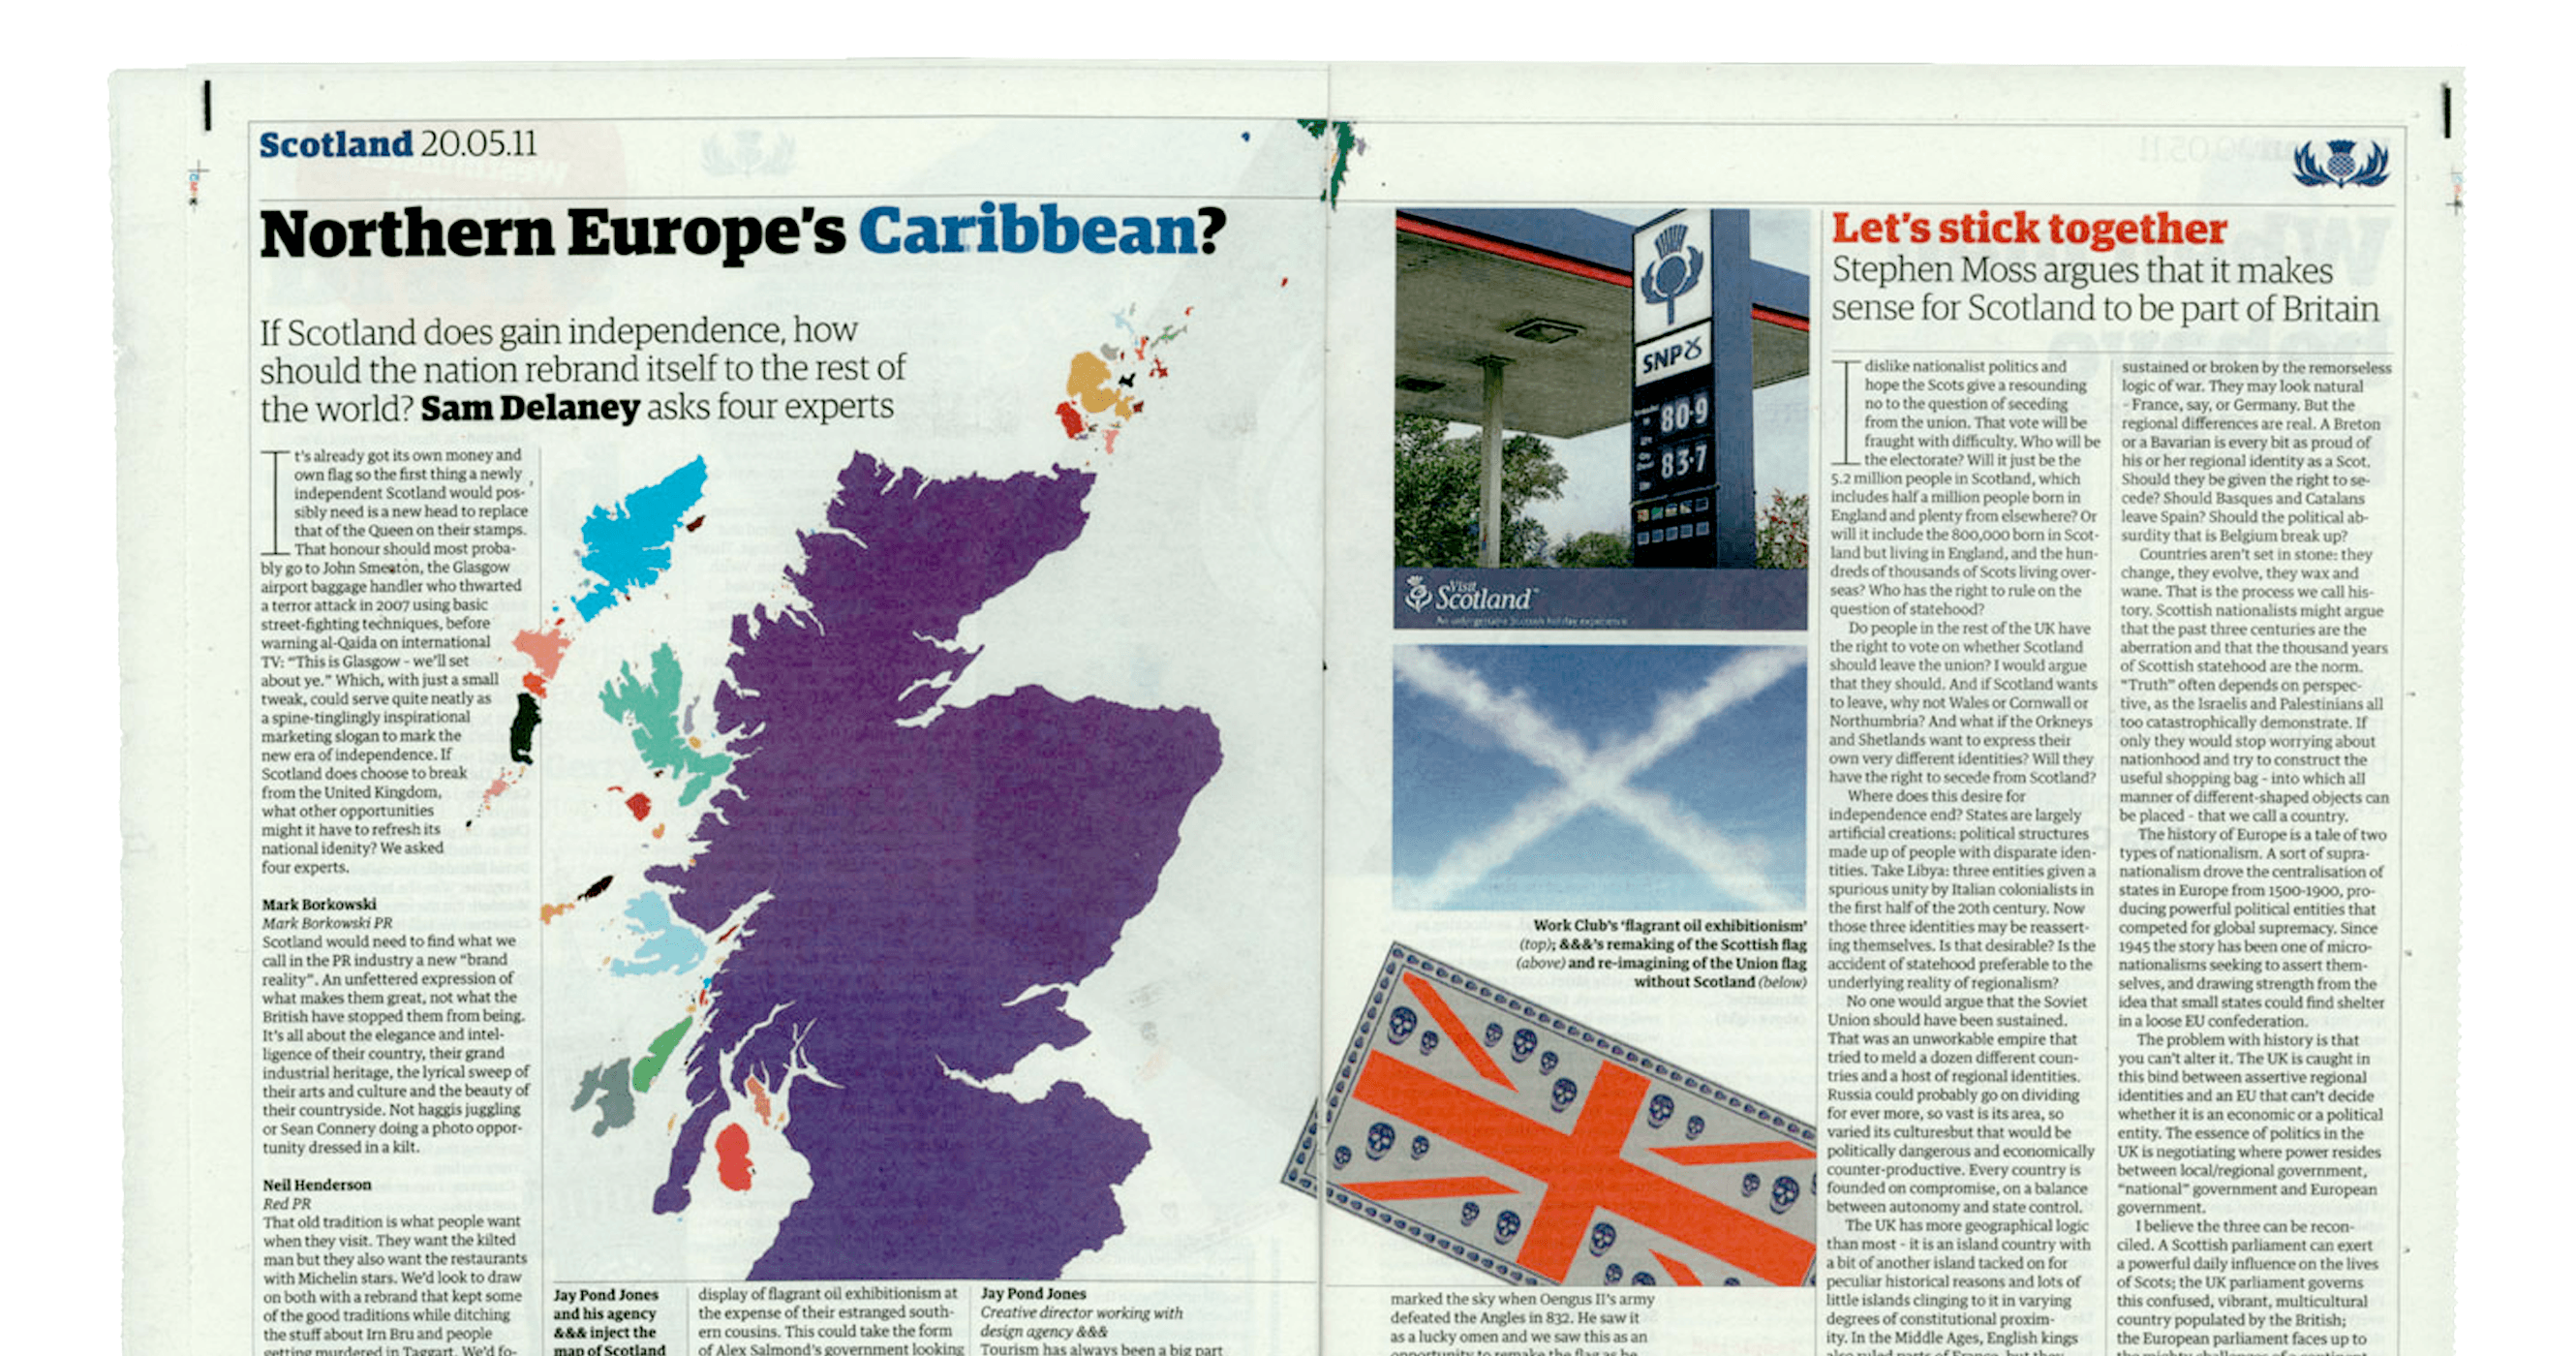 Guardian issue dedicated to: How should Scotland rebrand itself?